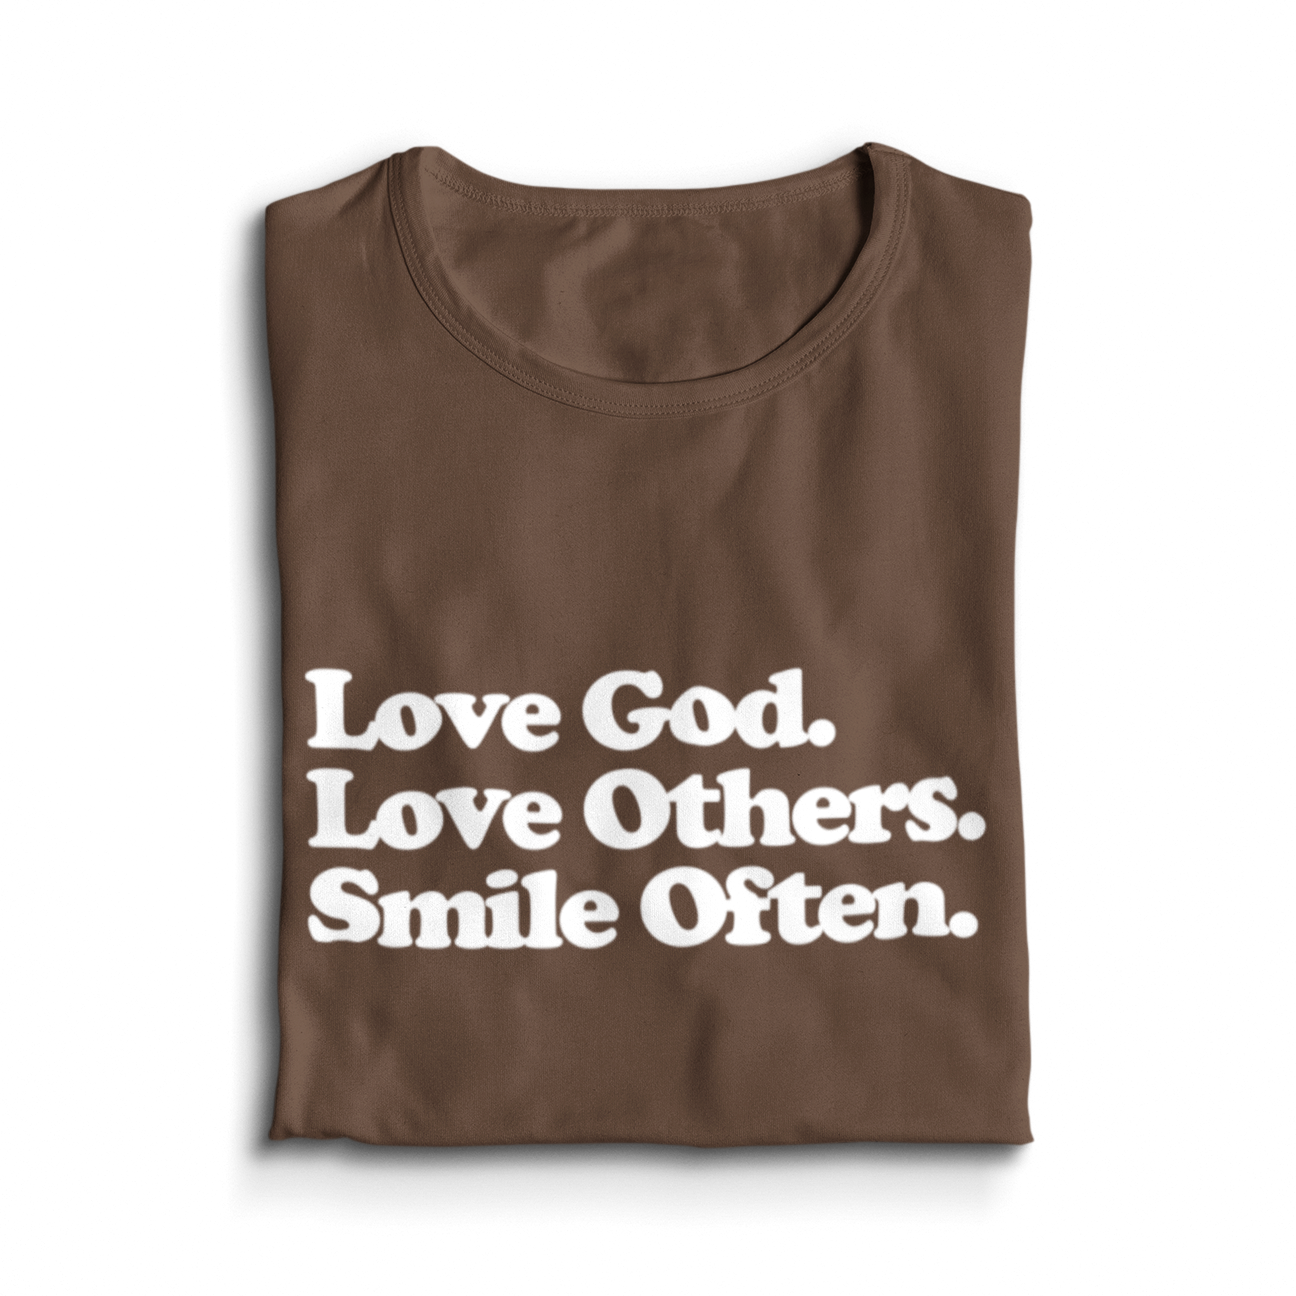 Smile Often T-shirt